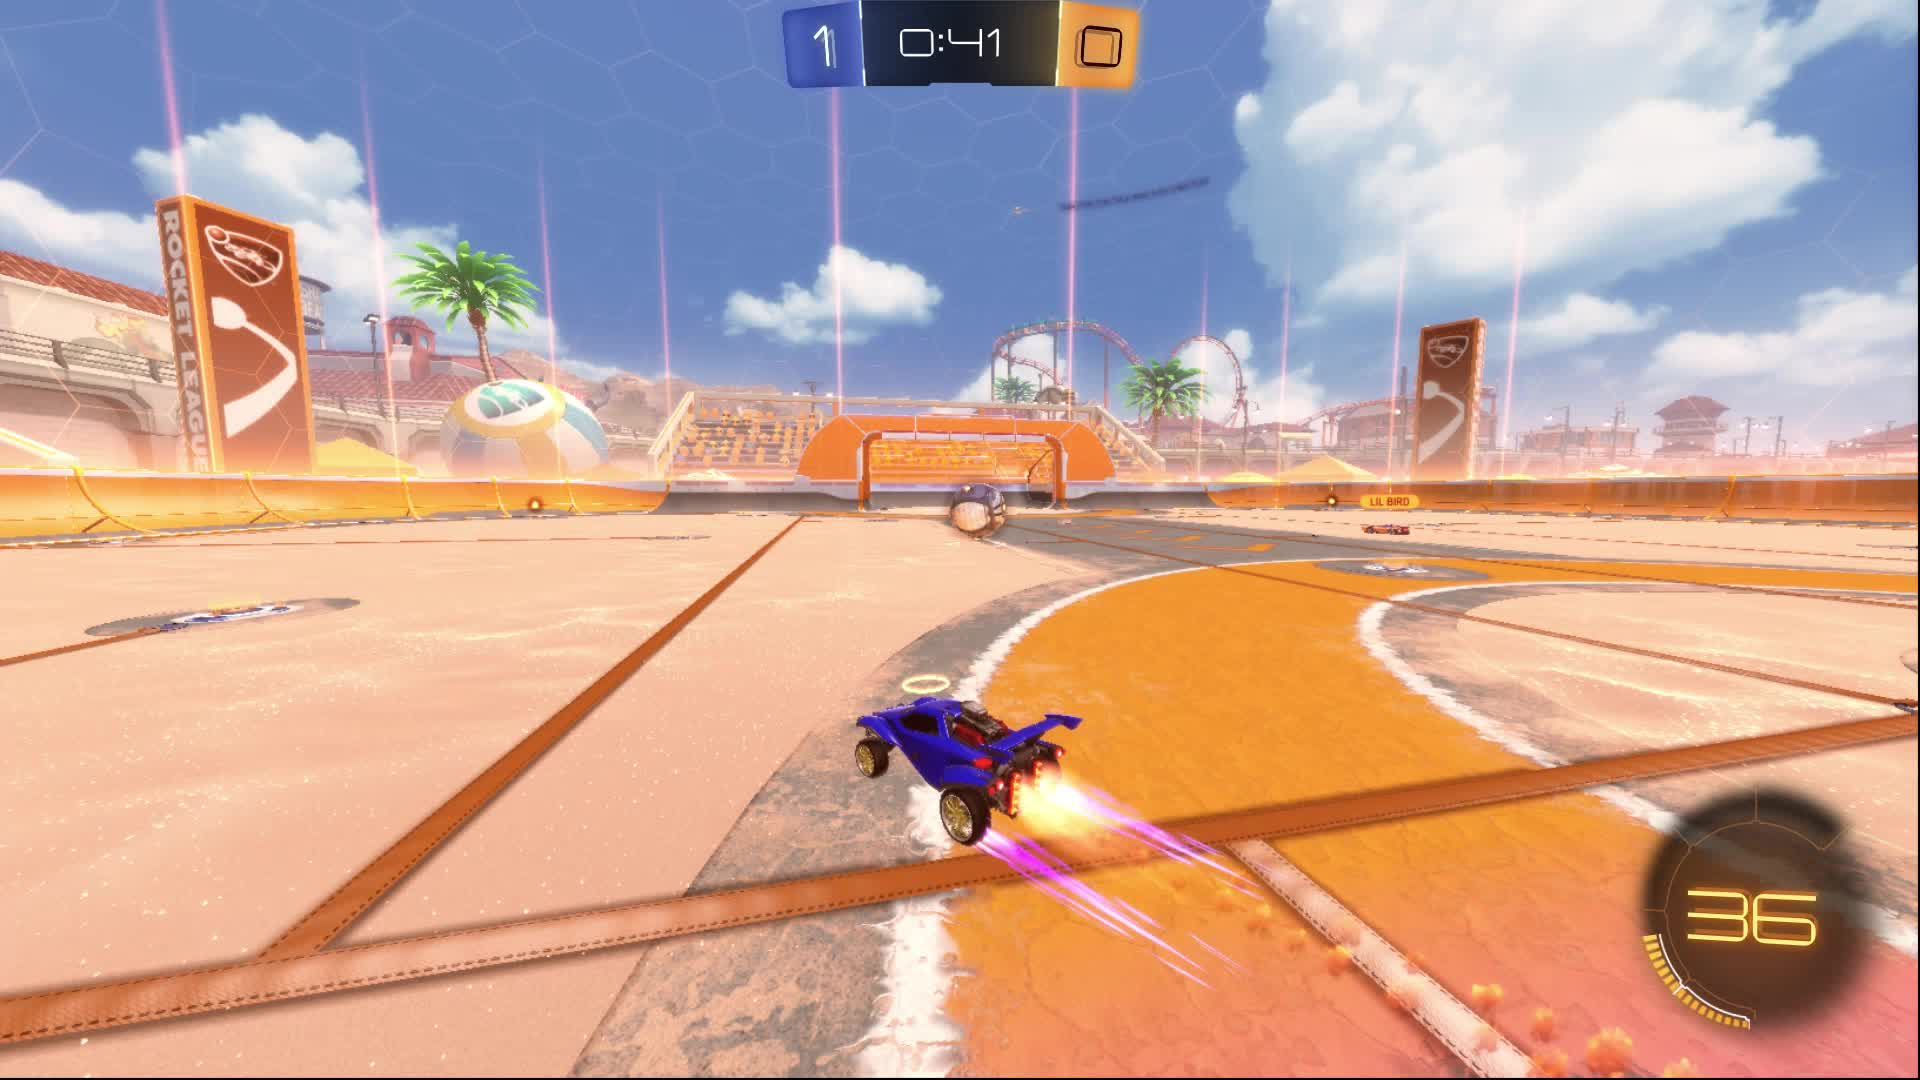 RocketLeague, videos (12) GIFs